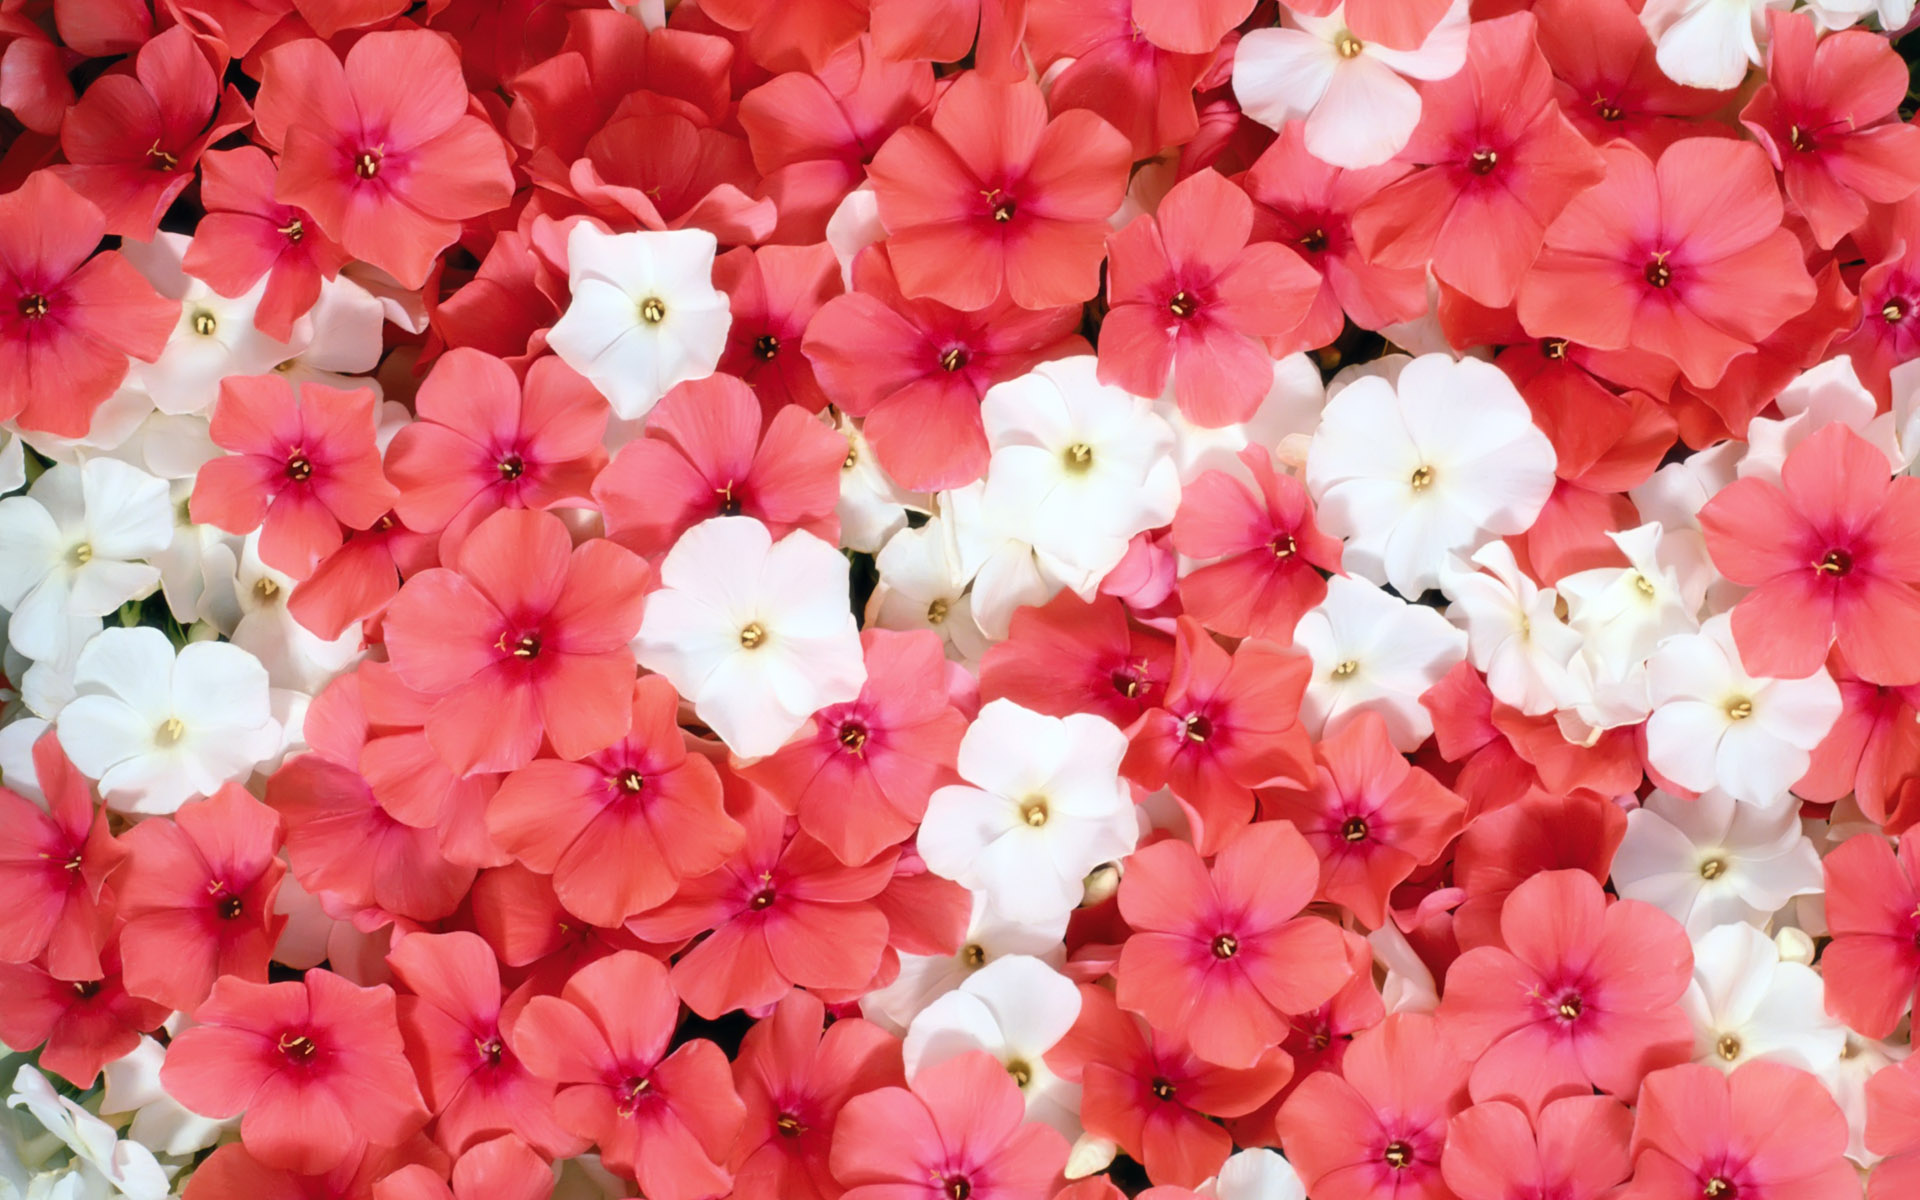 Pink and white phlox flowers hd wallpaper background image pink flower white flower wallpapers id713266 mightylinksfo